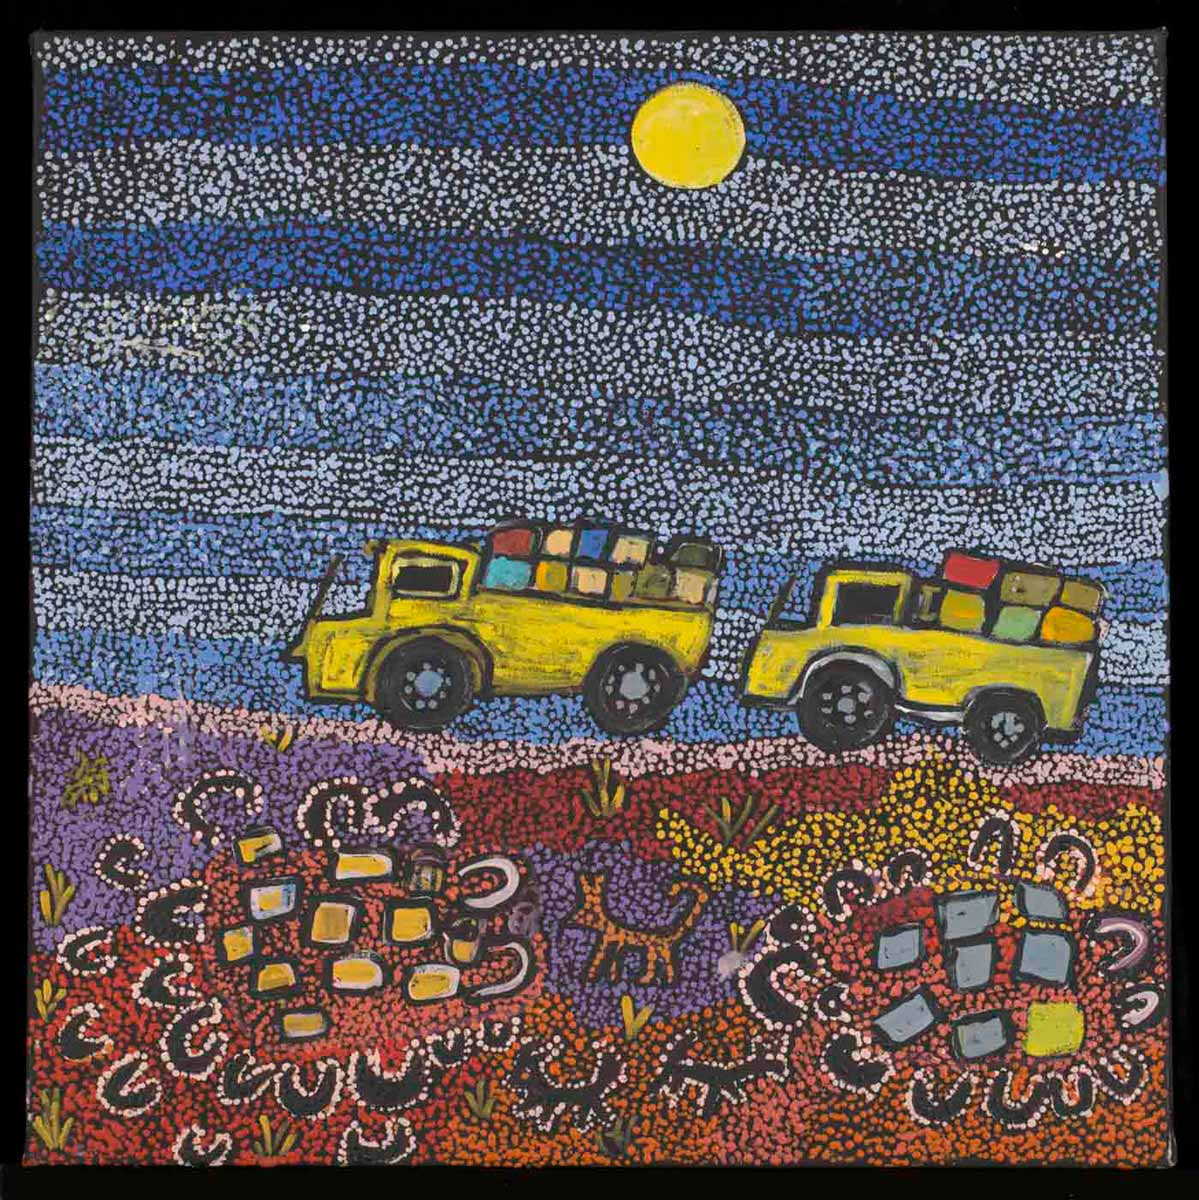 An acrylic painting on canvas showing two yellow trucks carrying big loads, against a mulitcoloured dot infill background. - click to view larger image